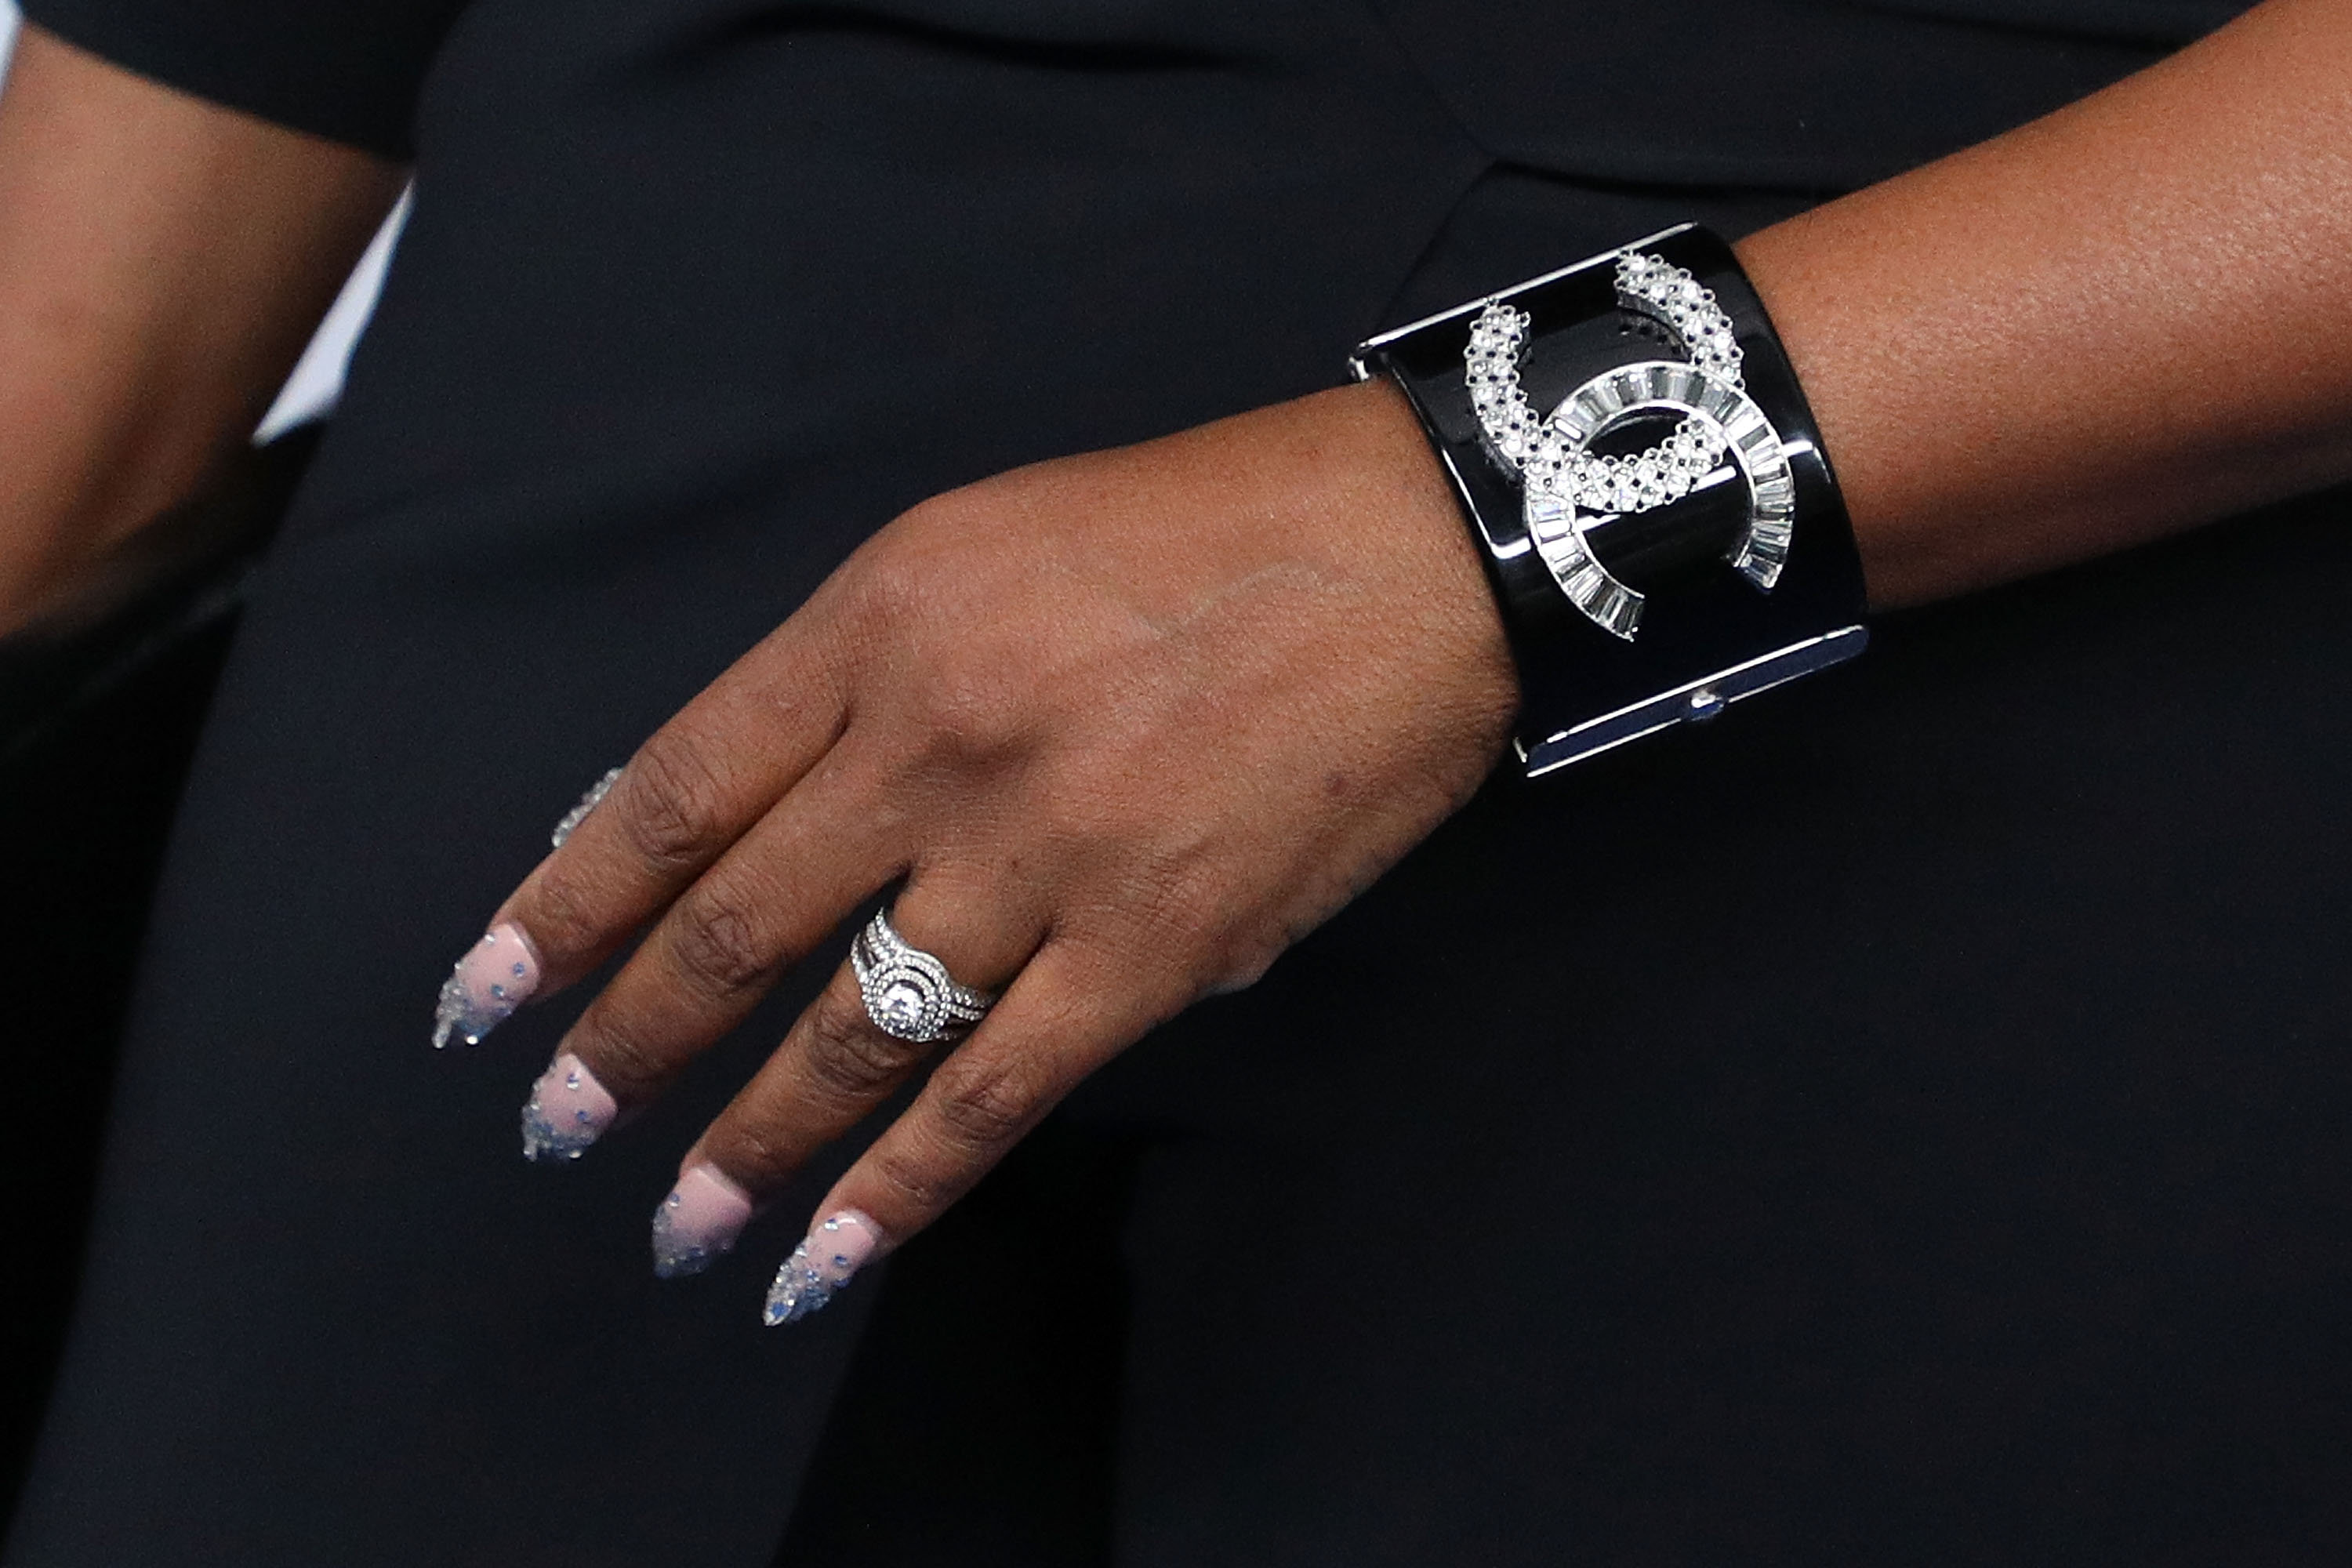 A woman wears a Chanel bracelet.